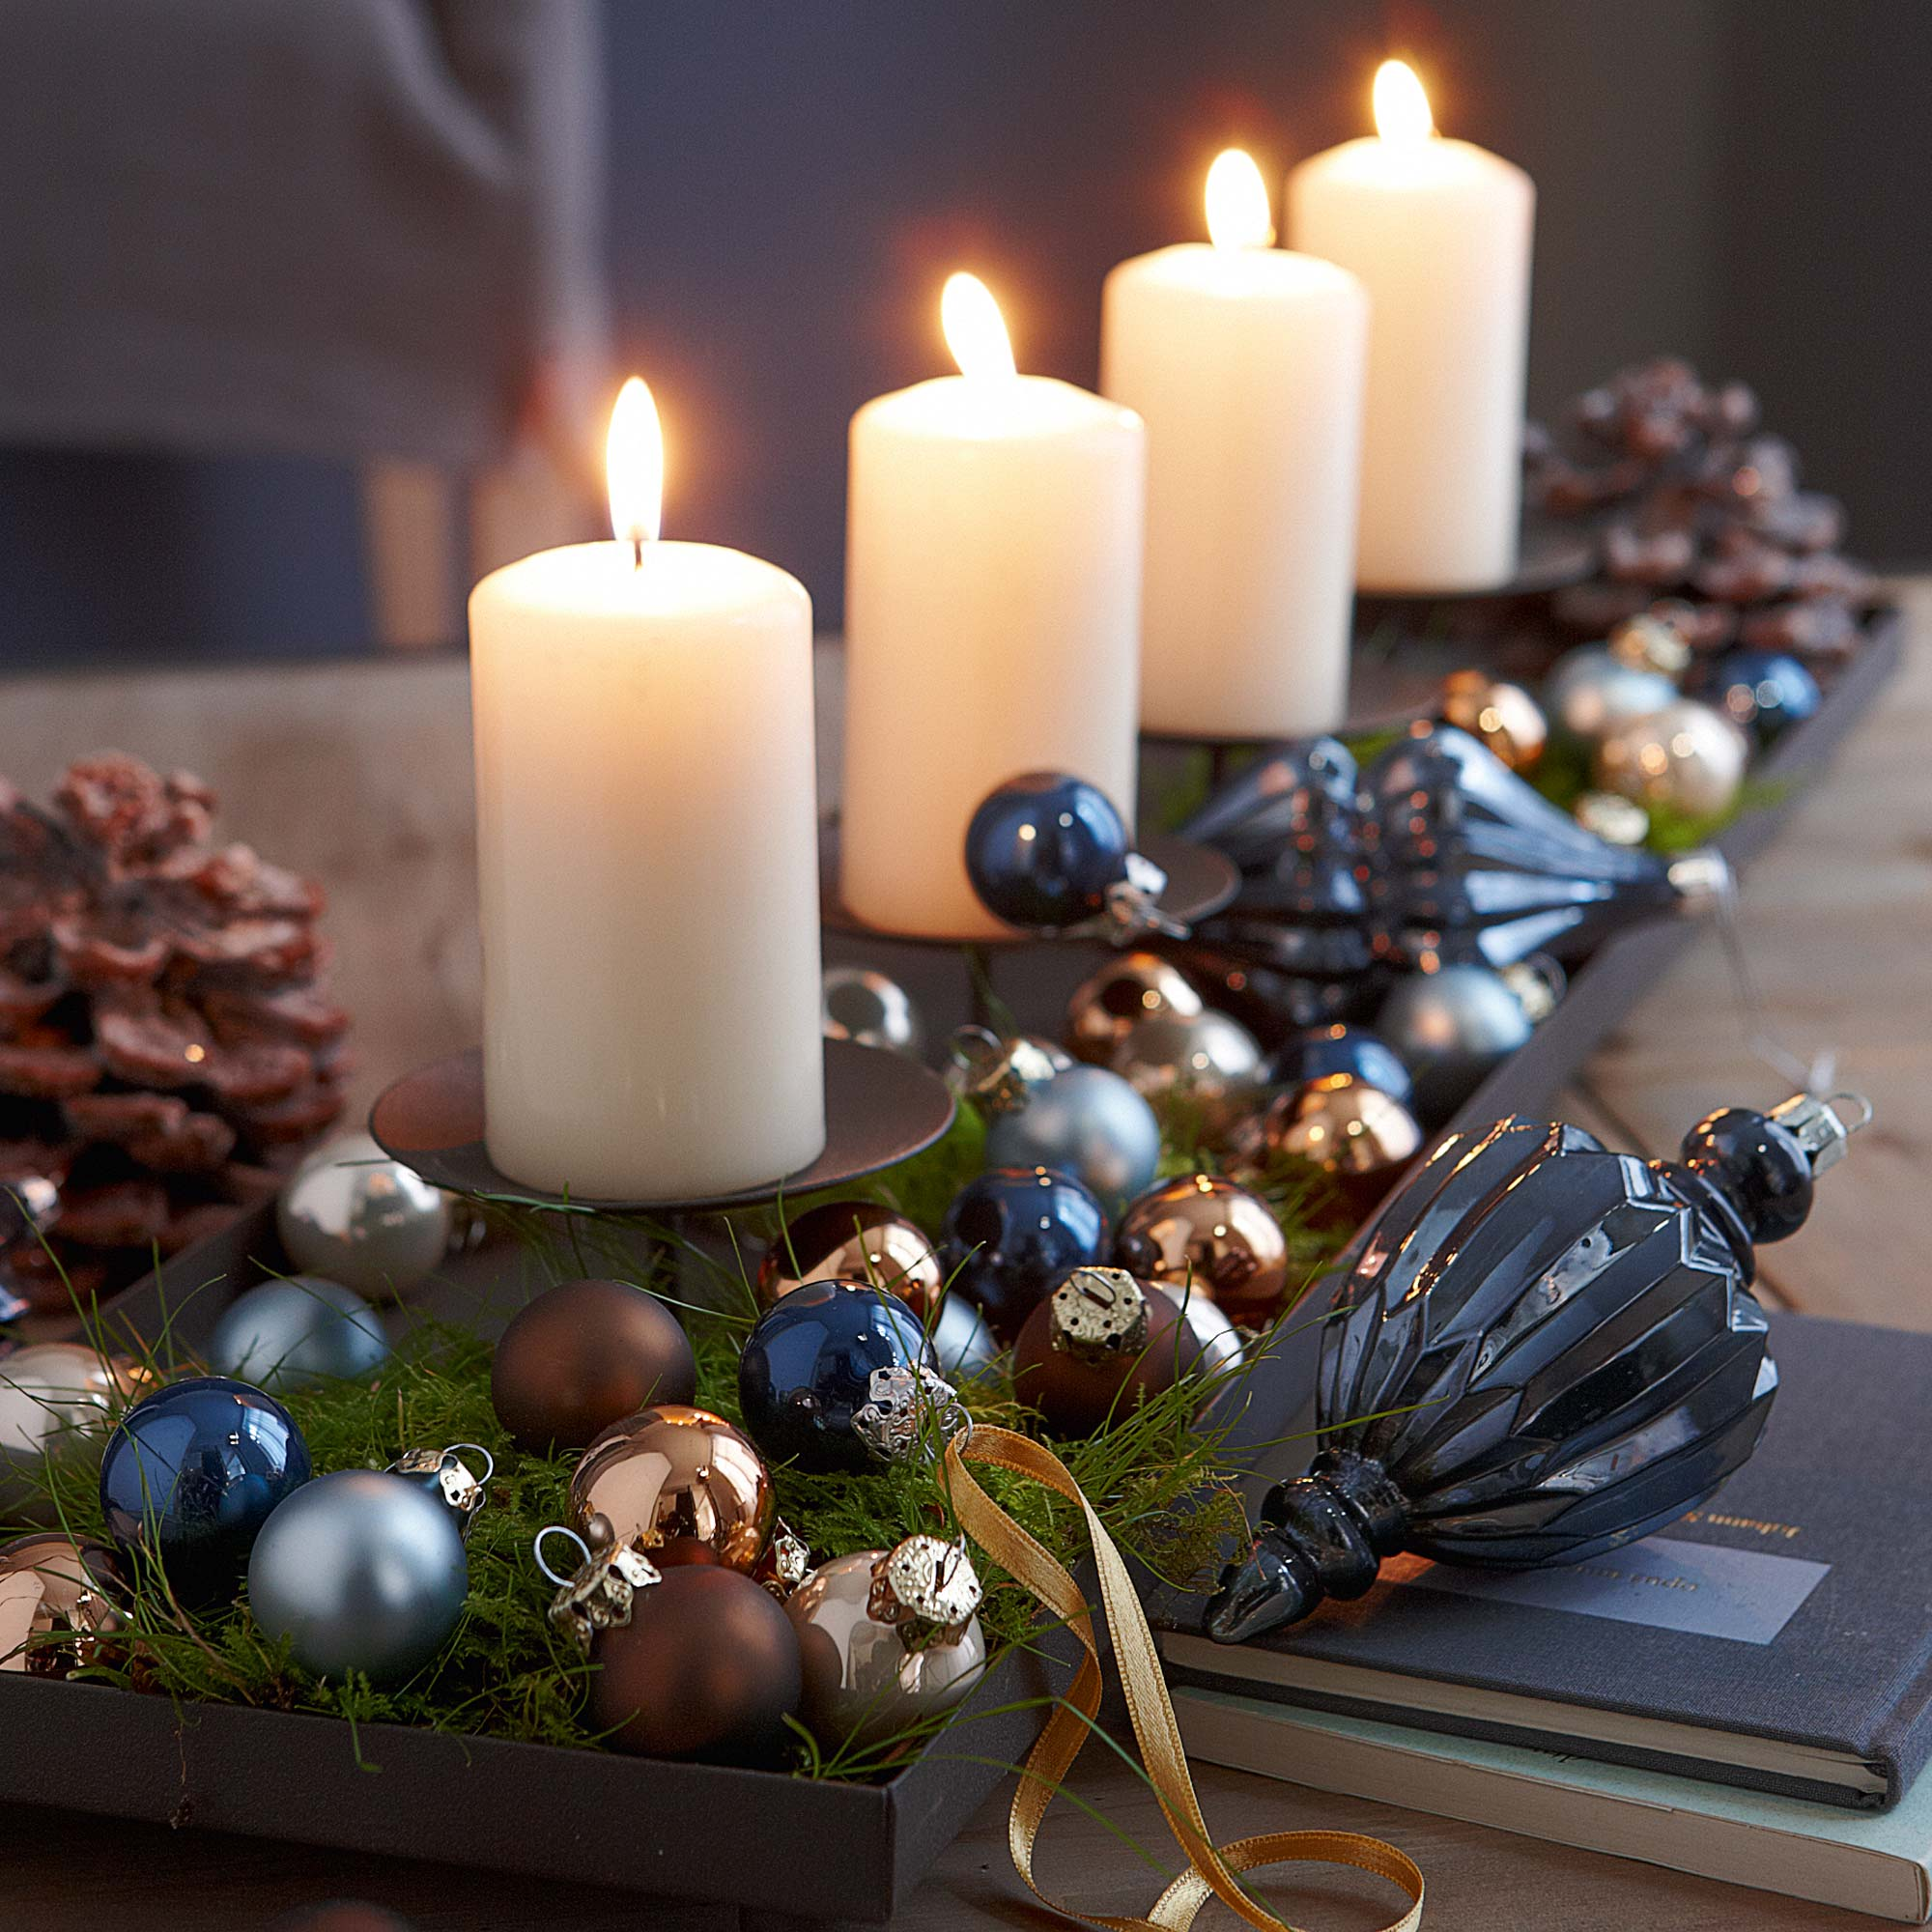 40 Scintillating Christmas Candle Decoration Ideas - All About ...